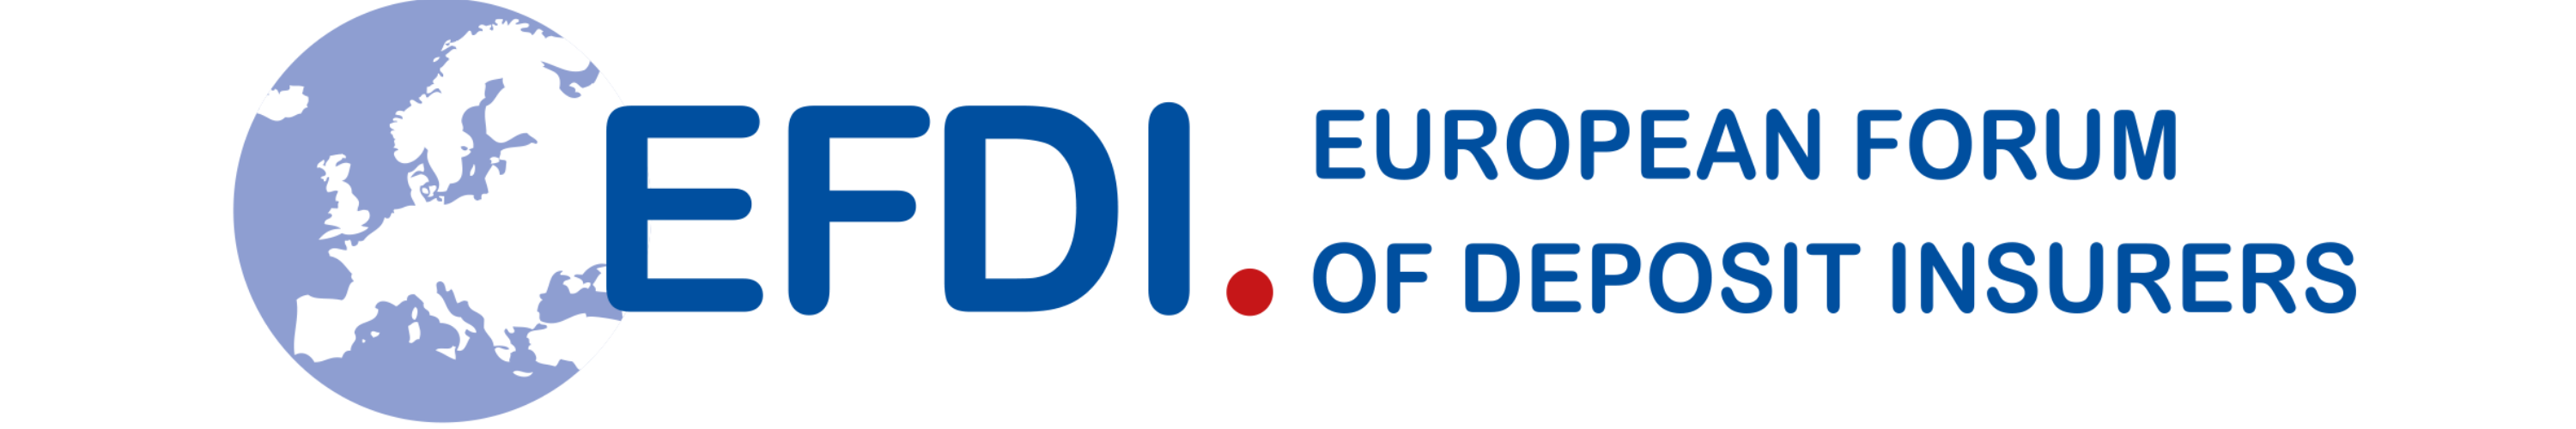 European Forum of Deposit Insurers (EFDI) logo